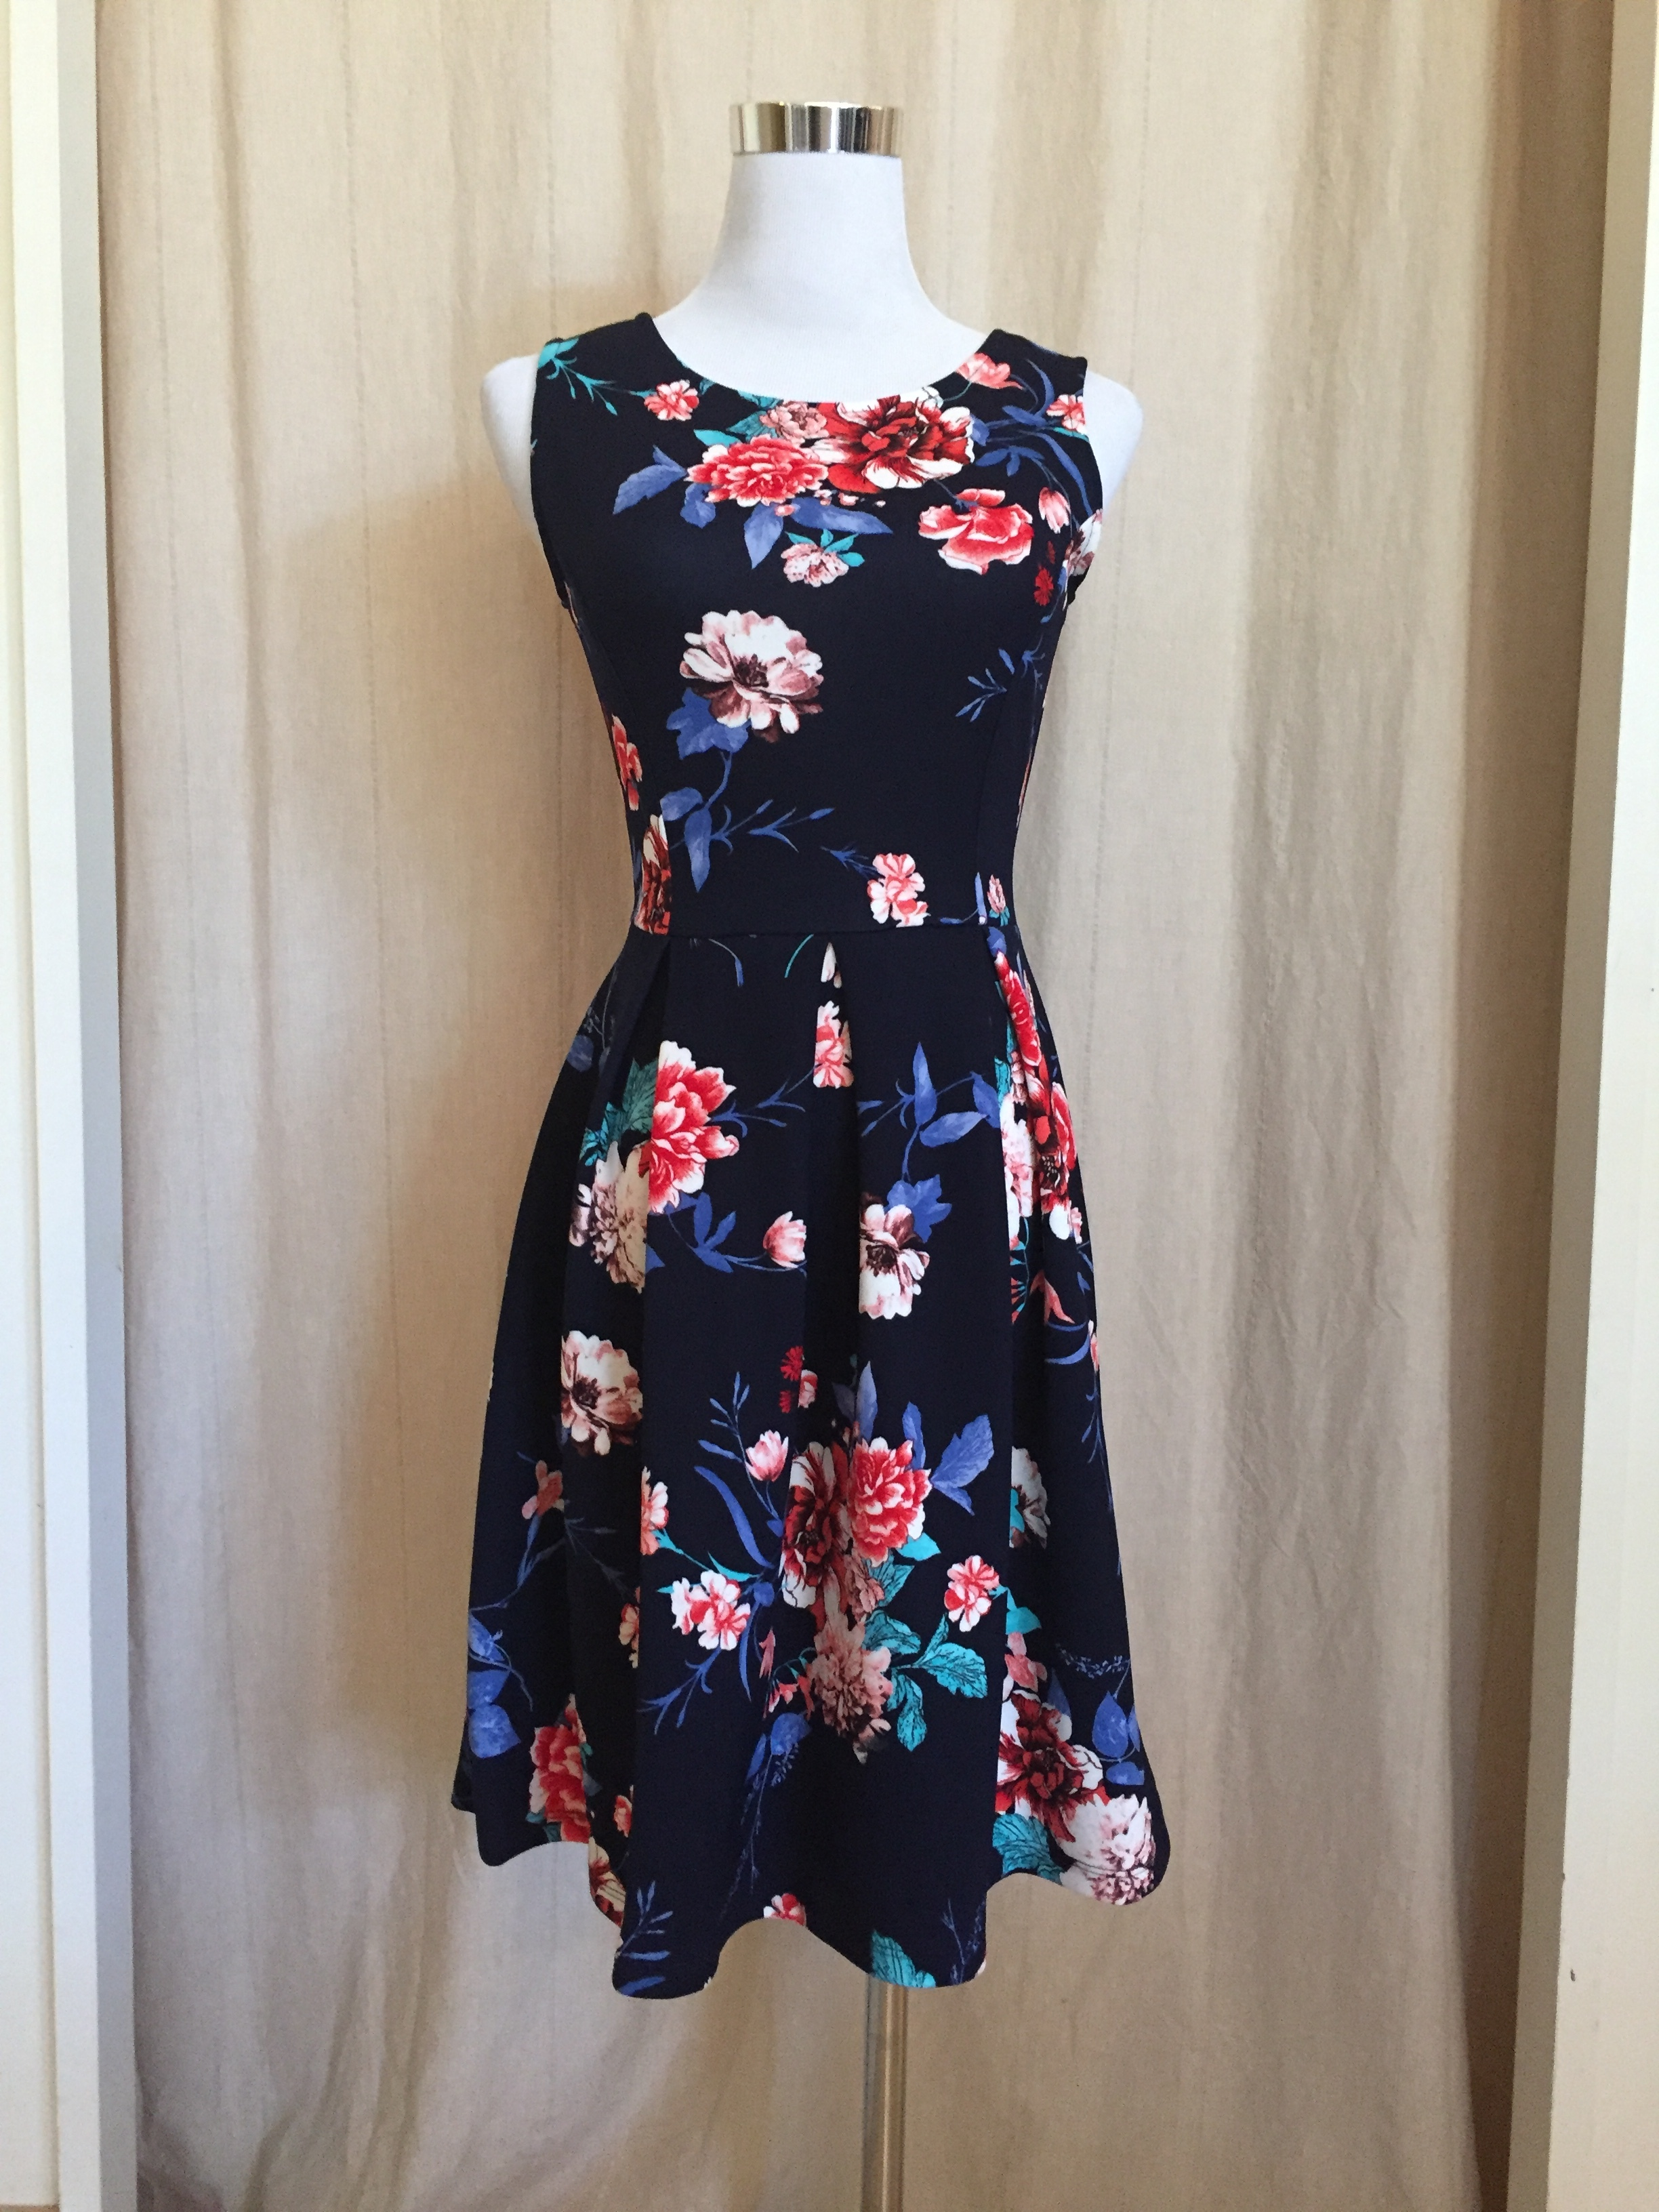 Floral Pleated Dress, $45